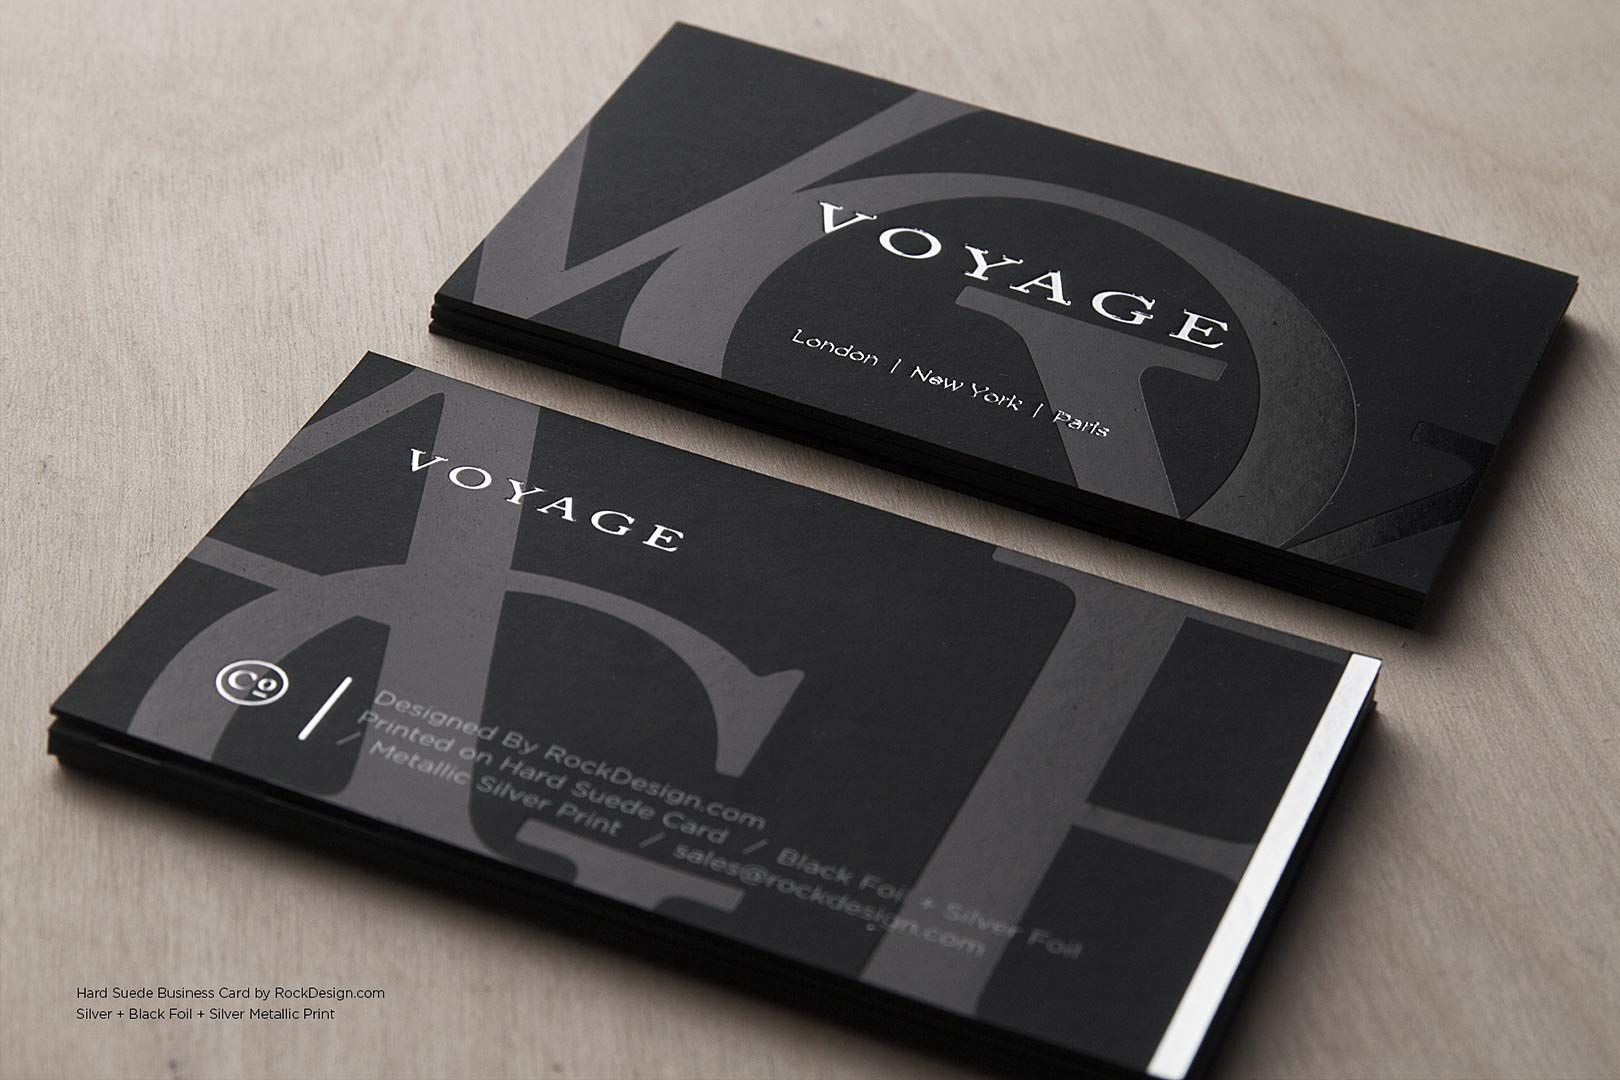 Hard Suede Business Cards Luxury Business Cards Printing Business Cards Elegant Business Cards